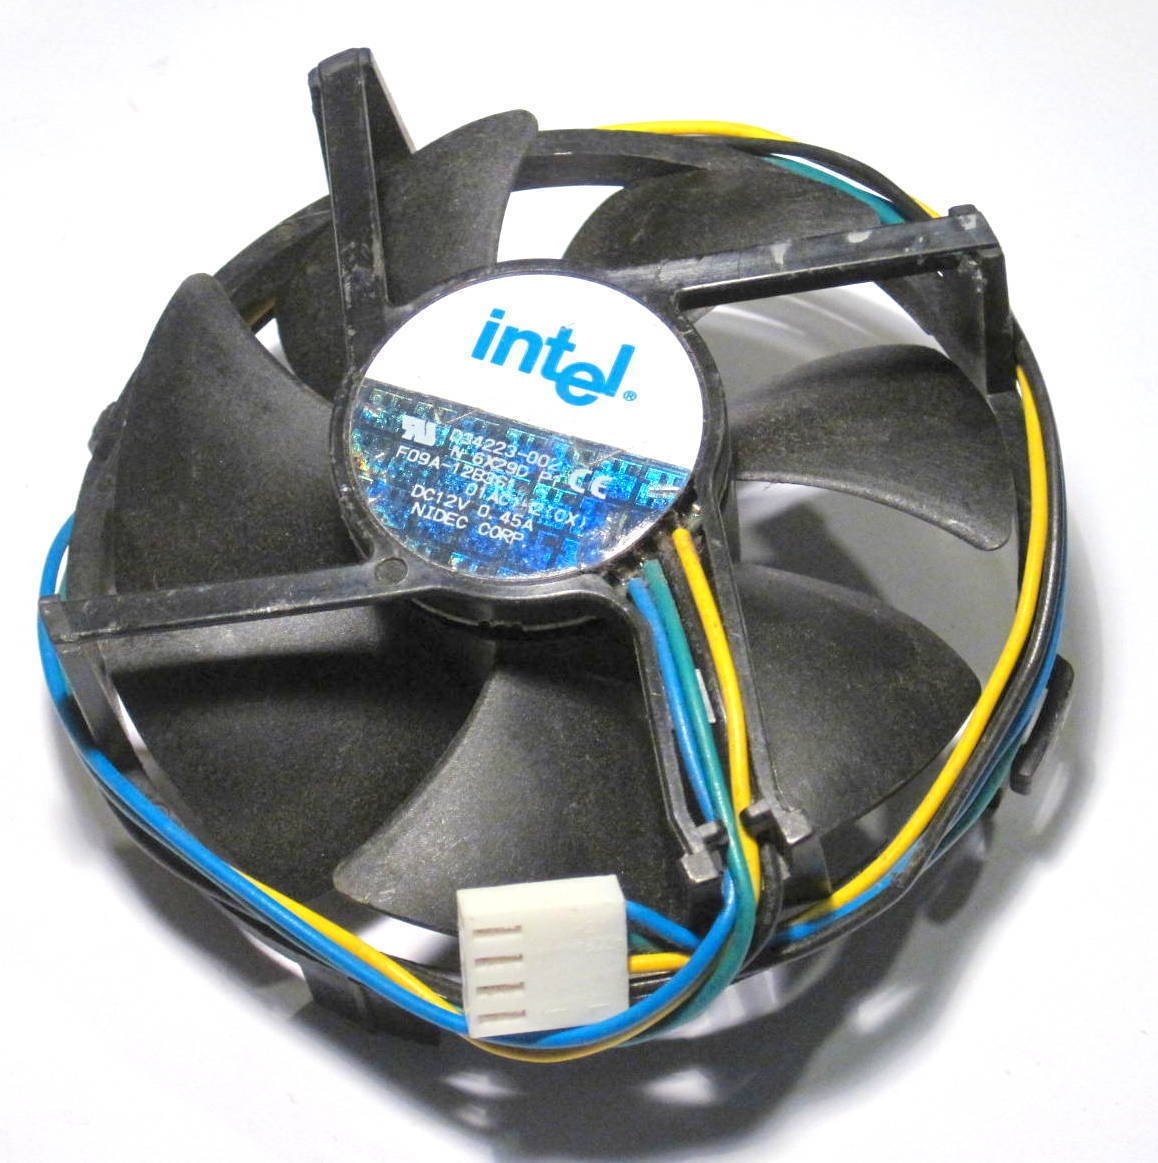 Intel LGA 775 Heatsink Fan